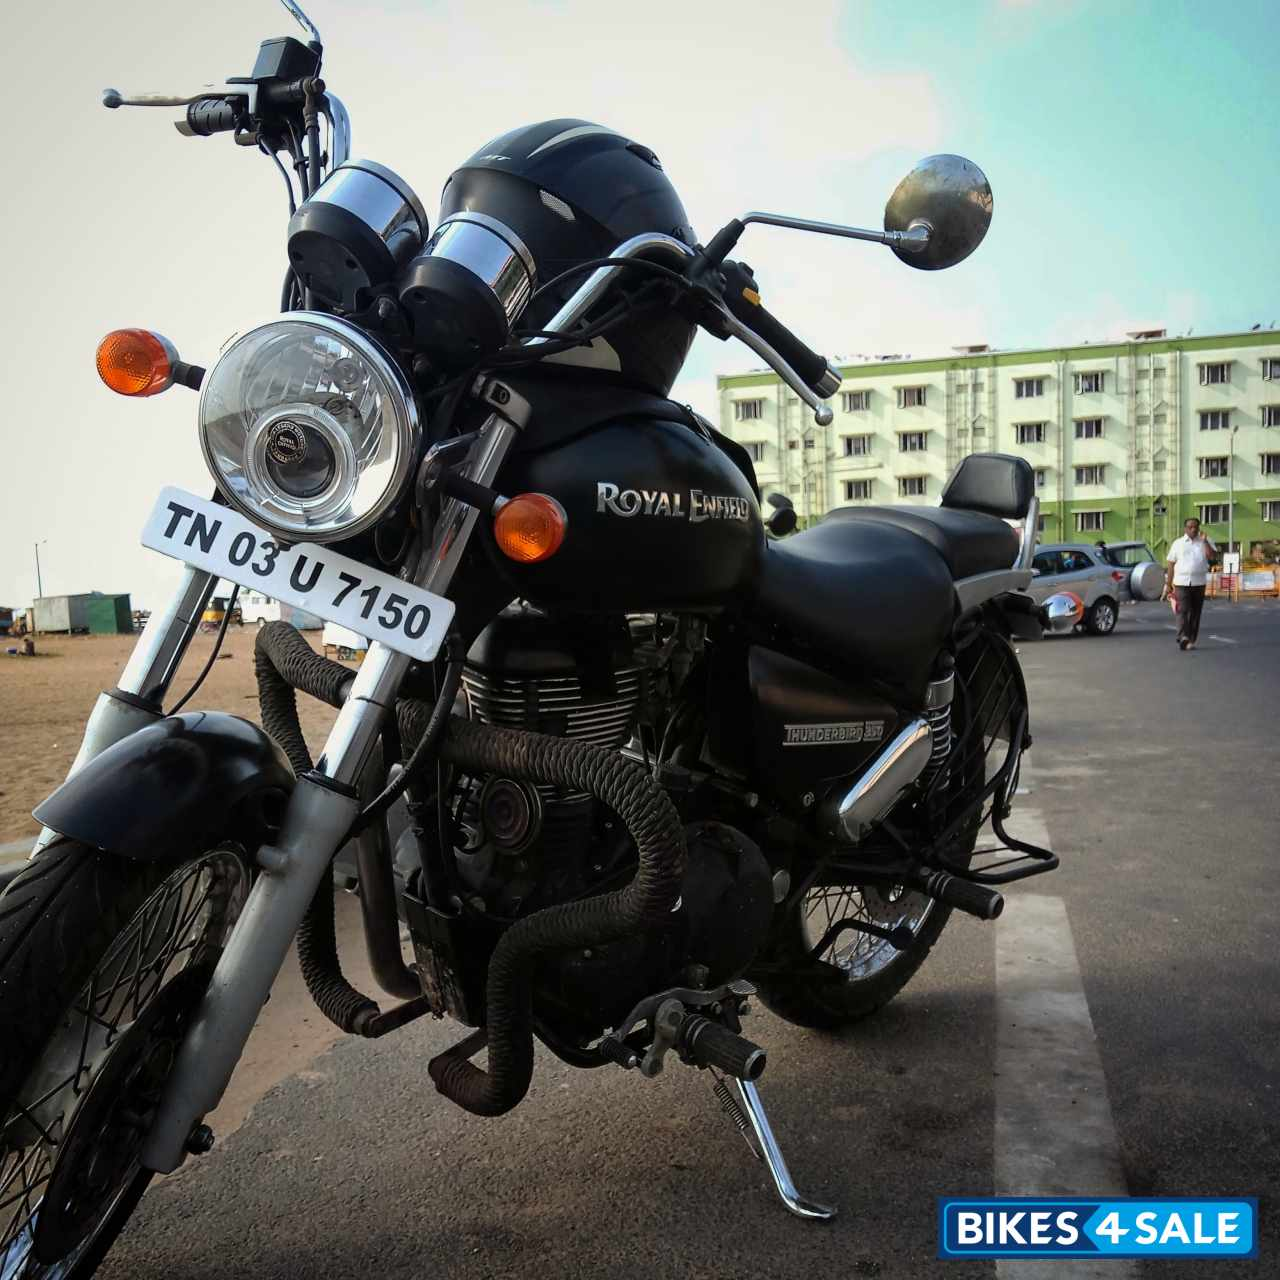 Matte Black Royal Enfield Thunderbird 350 Picture 8 Bike Id 203087 Bike Located In Chennai Bikes4sale